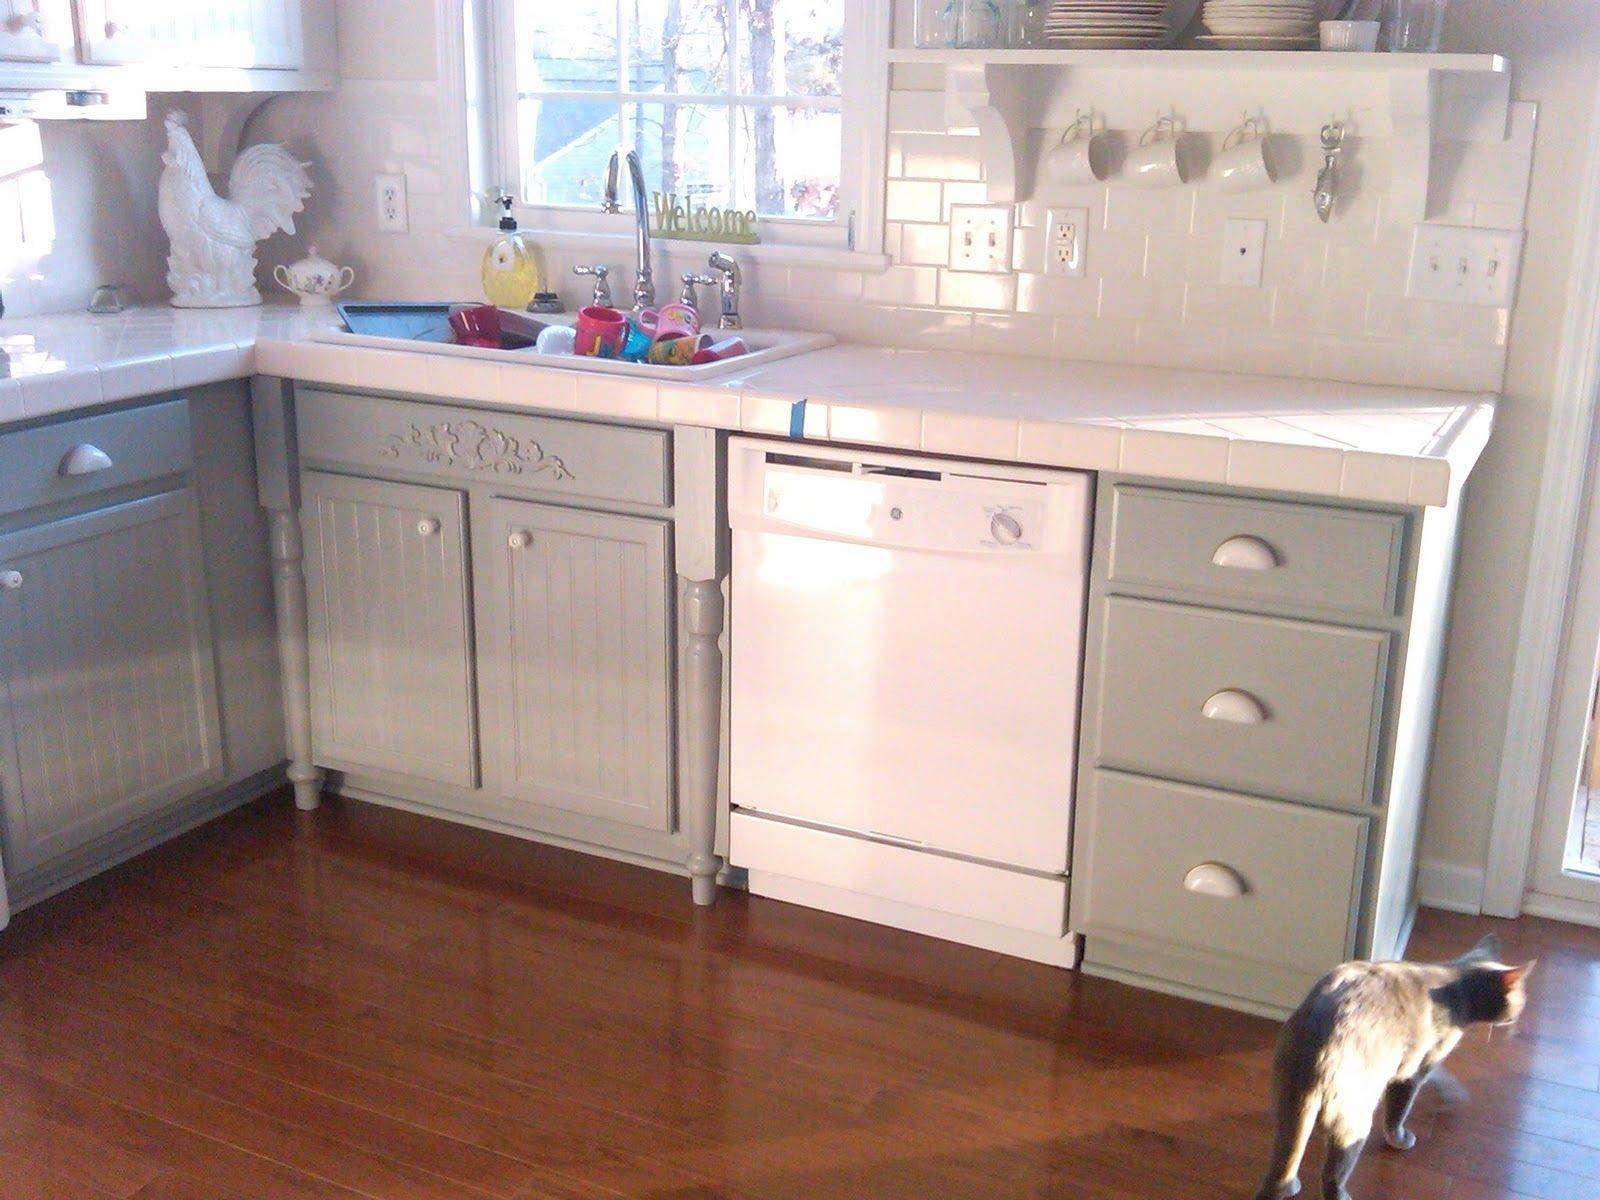 4 Painting Cabinets To Update Kitchen, Gray And White Kitchen, Mom And Her  Drill